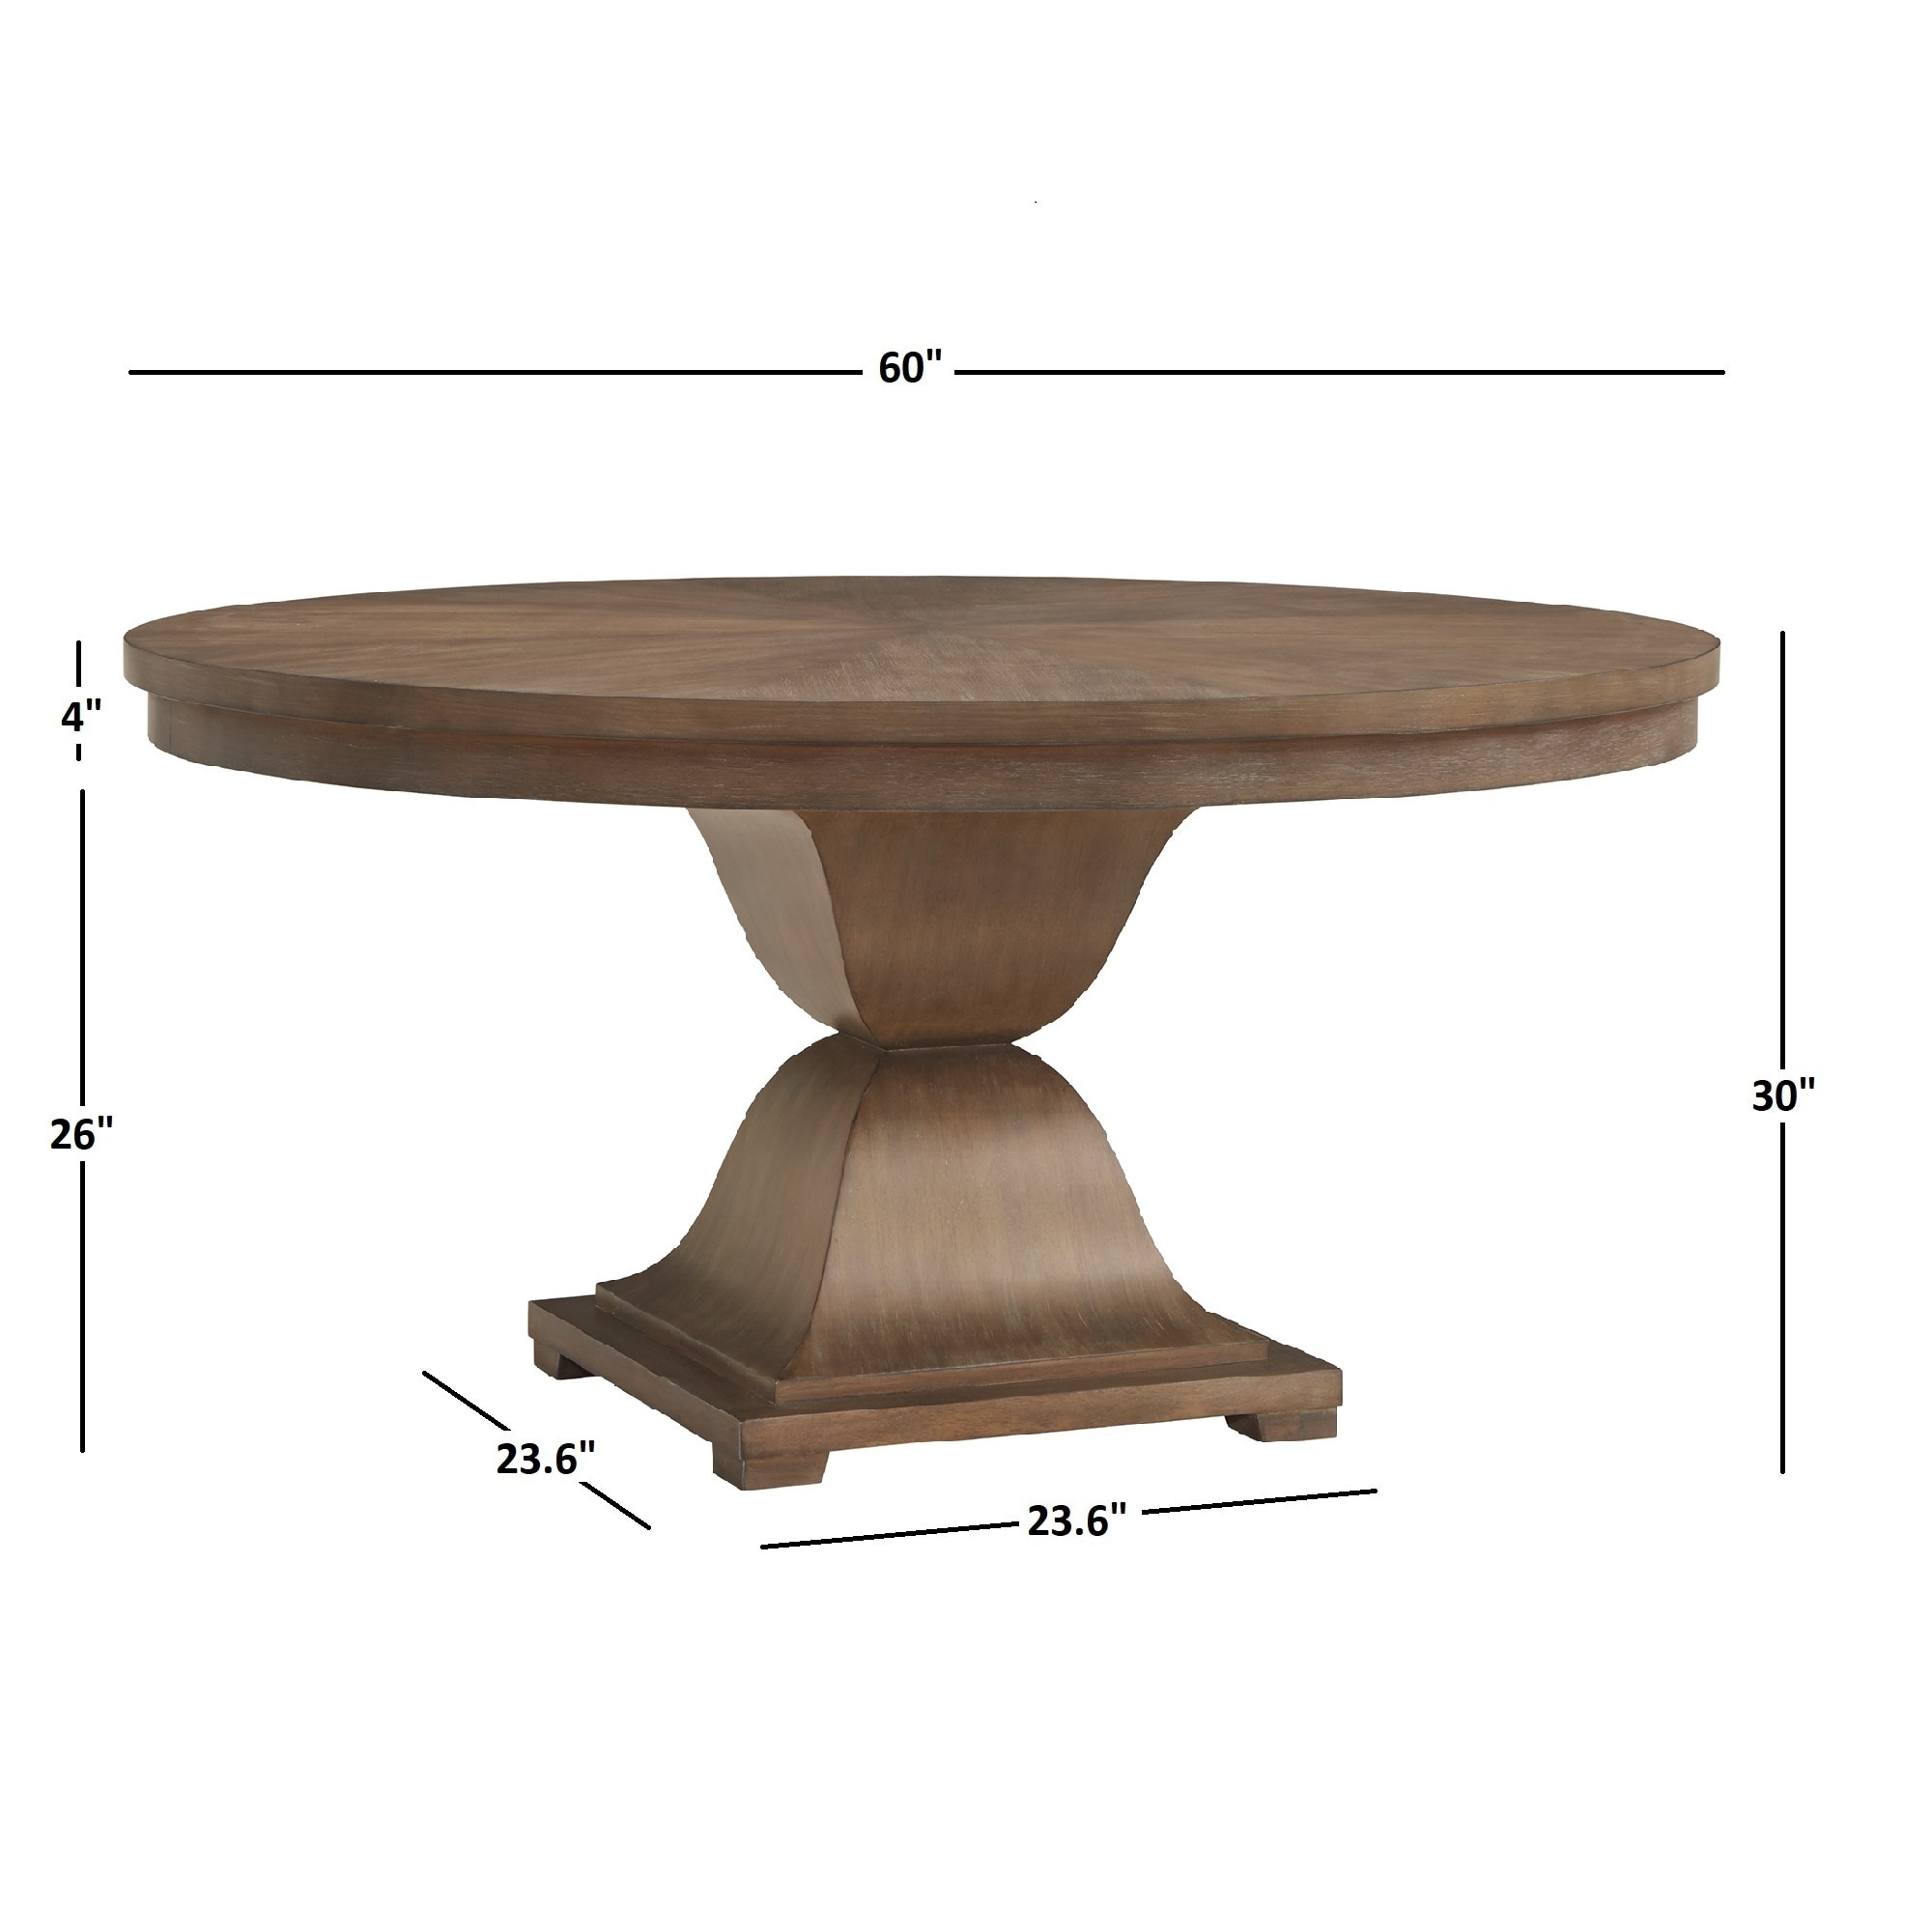 Shop monaco scratch resistant 60 inch round wood dining table by inspire q artisan free shipping today overstock com 23591074